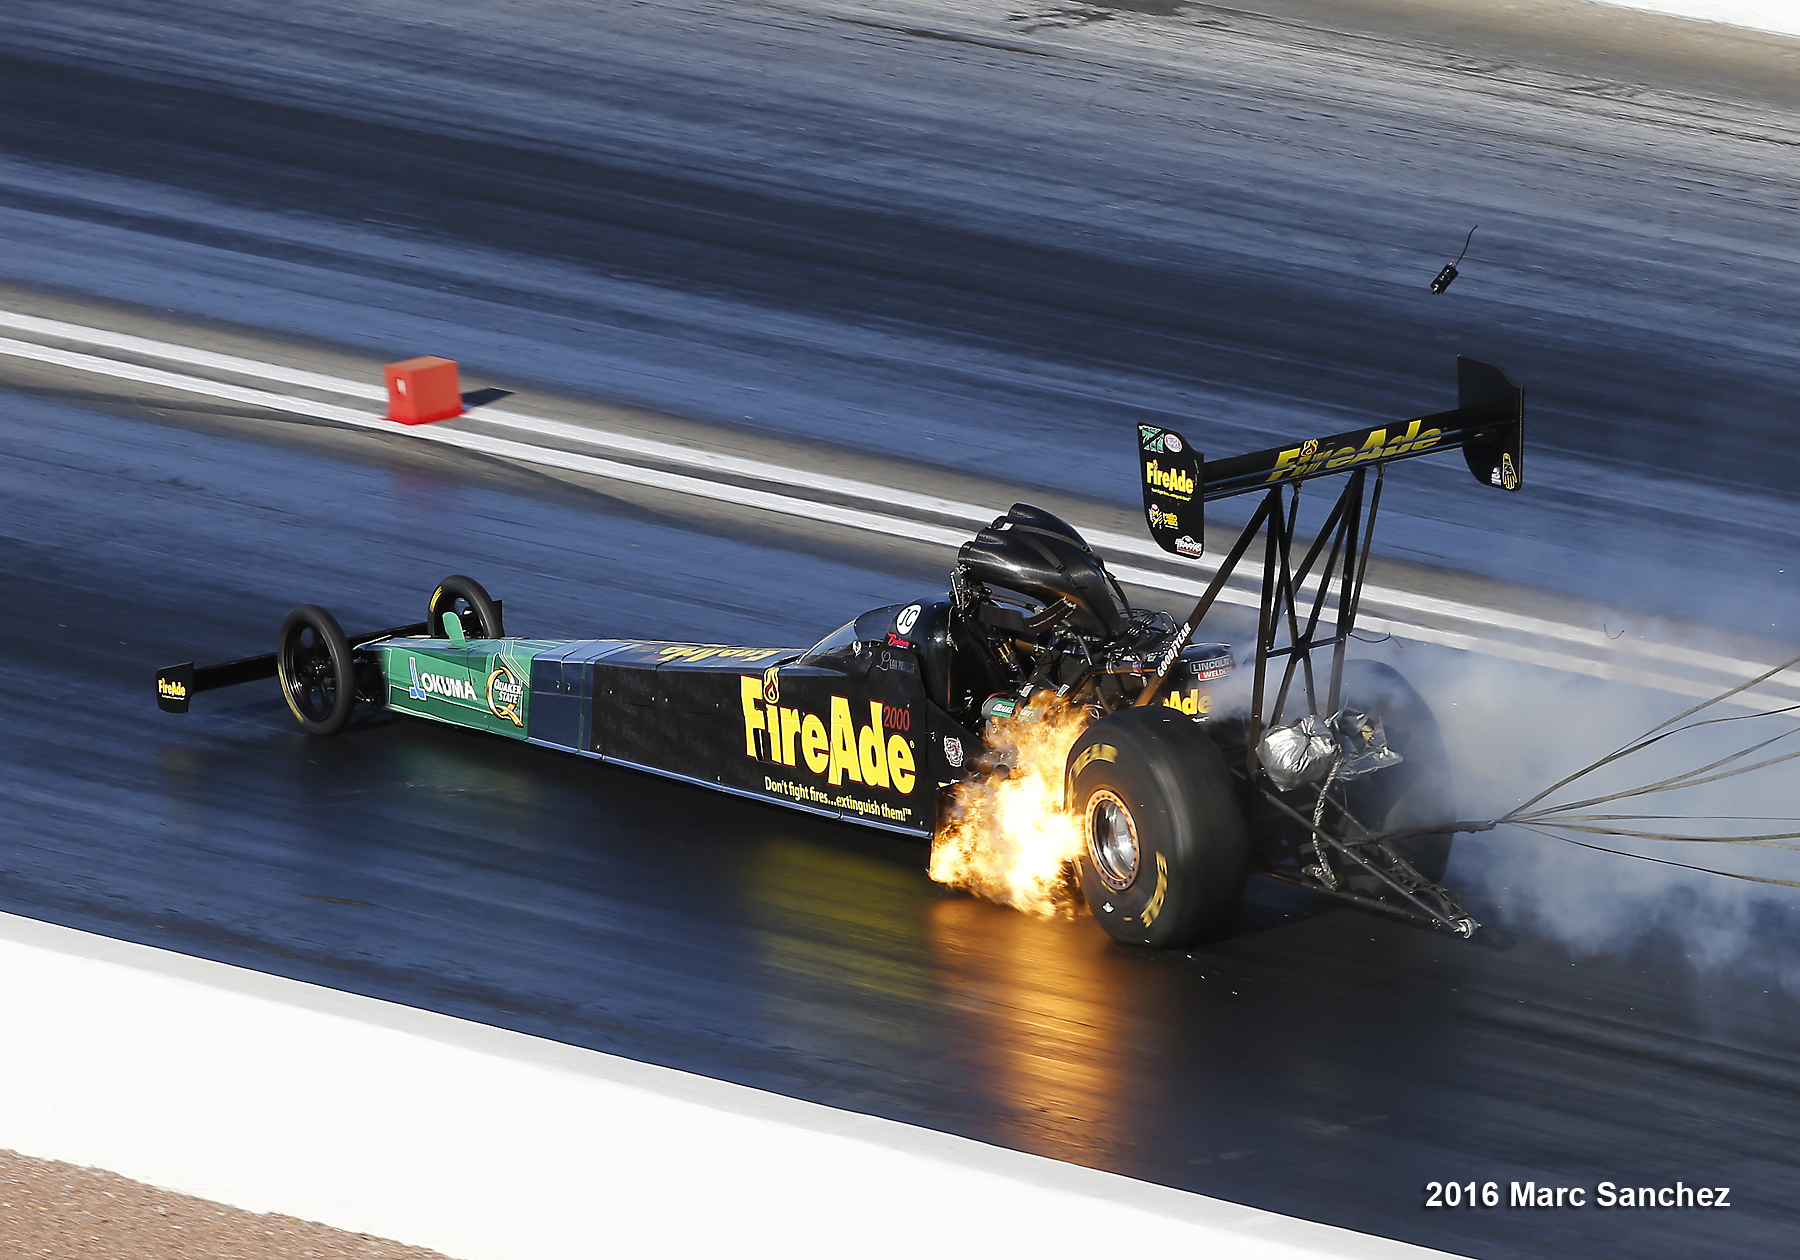 2016 April 02: Leah Pruett (777 TF) NHRA Top Fuel Dragster blows an engine during the NHRA Denso Spark Plugs NHRA Nationals at The Strip at Las Vegas Motor Speedway in Las Vegas, Nevada.